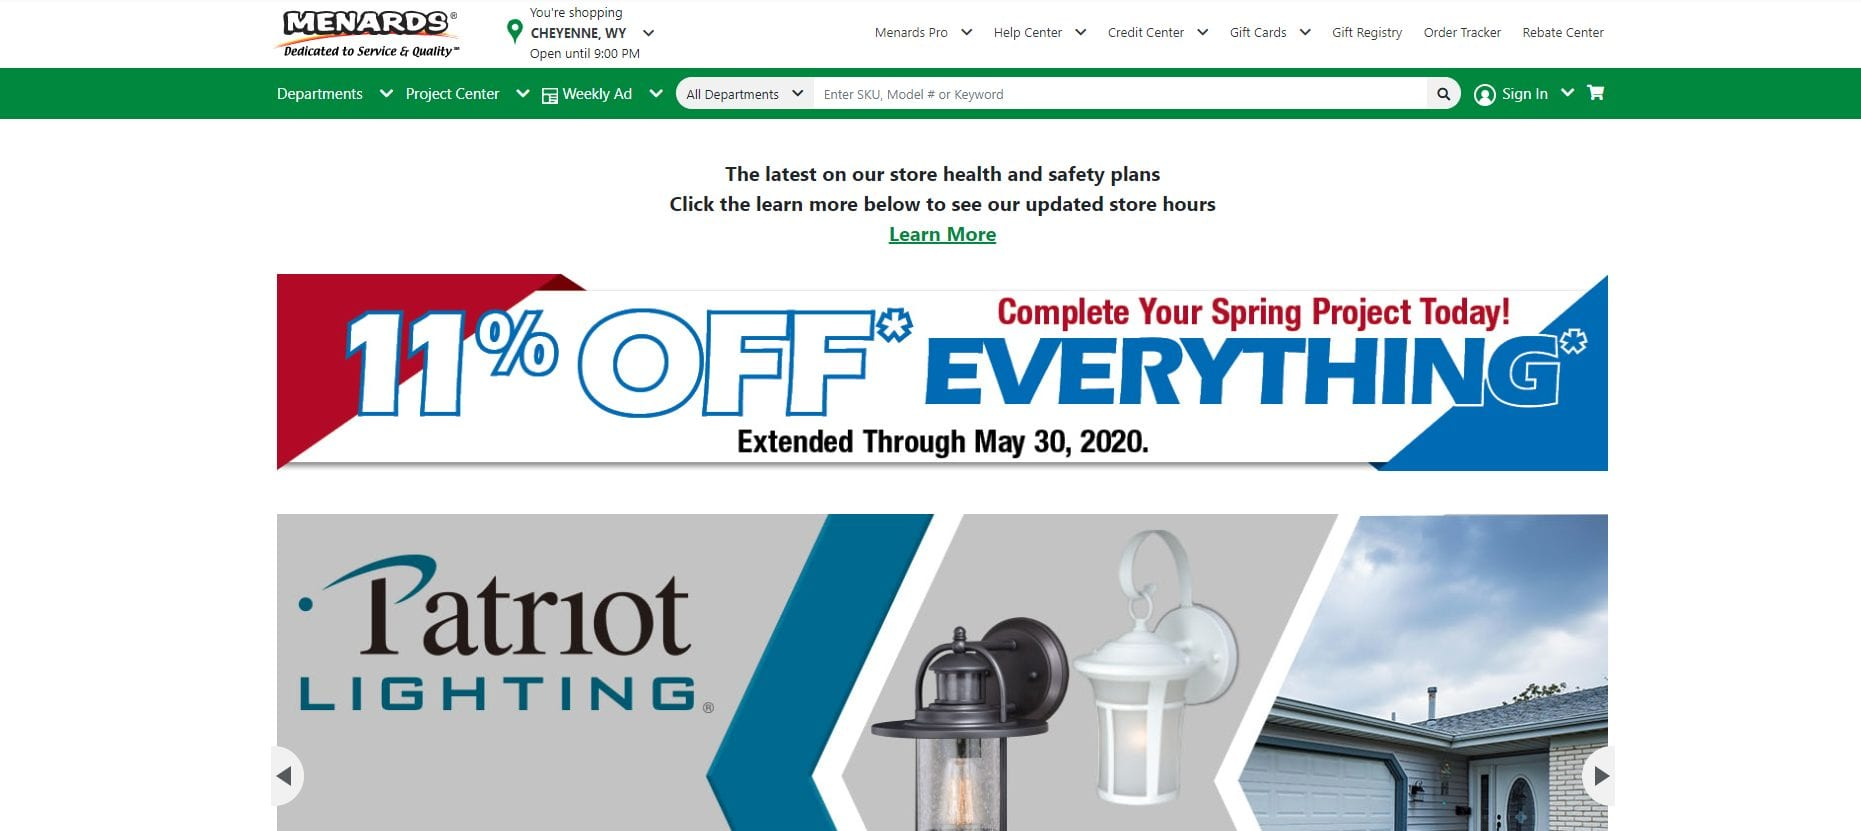 11% off everything screenshot of the Menards home page